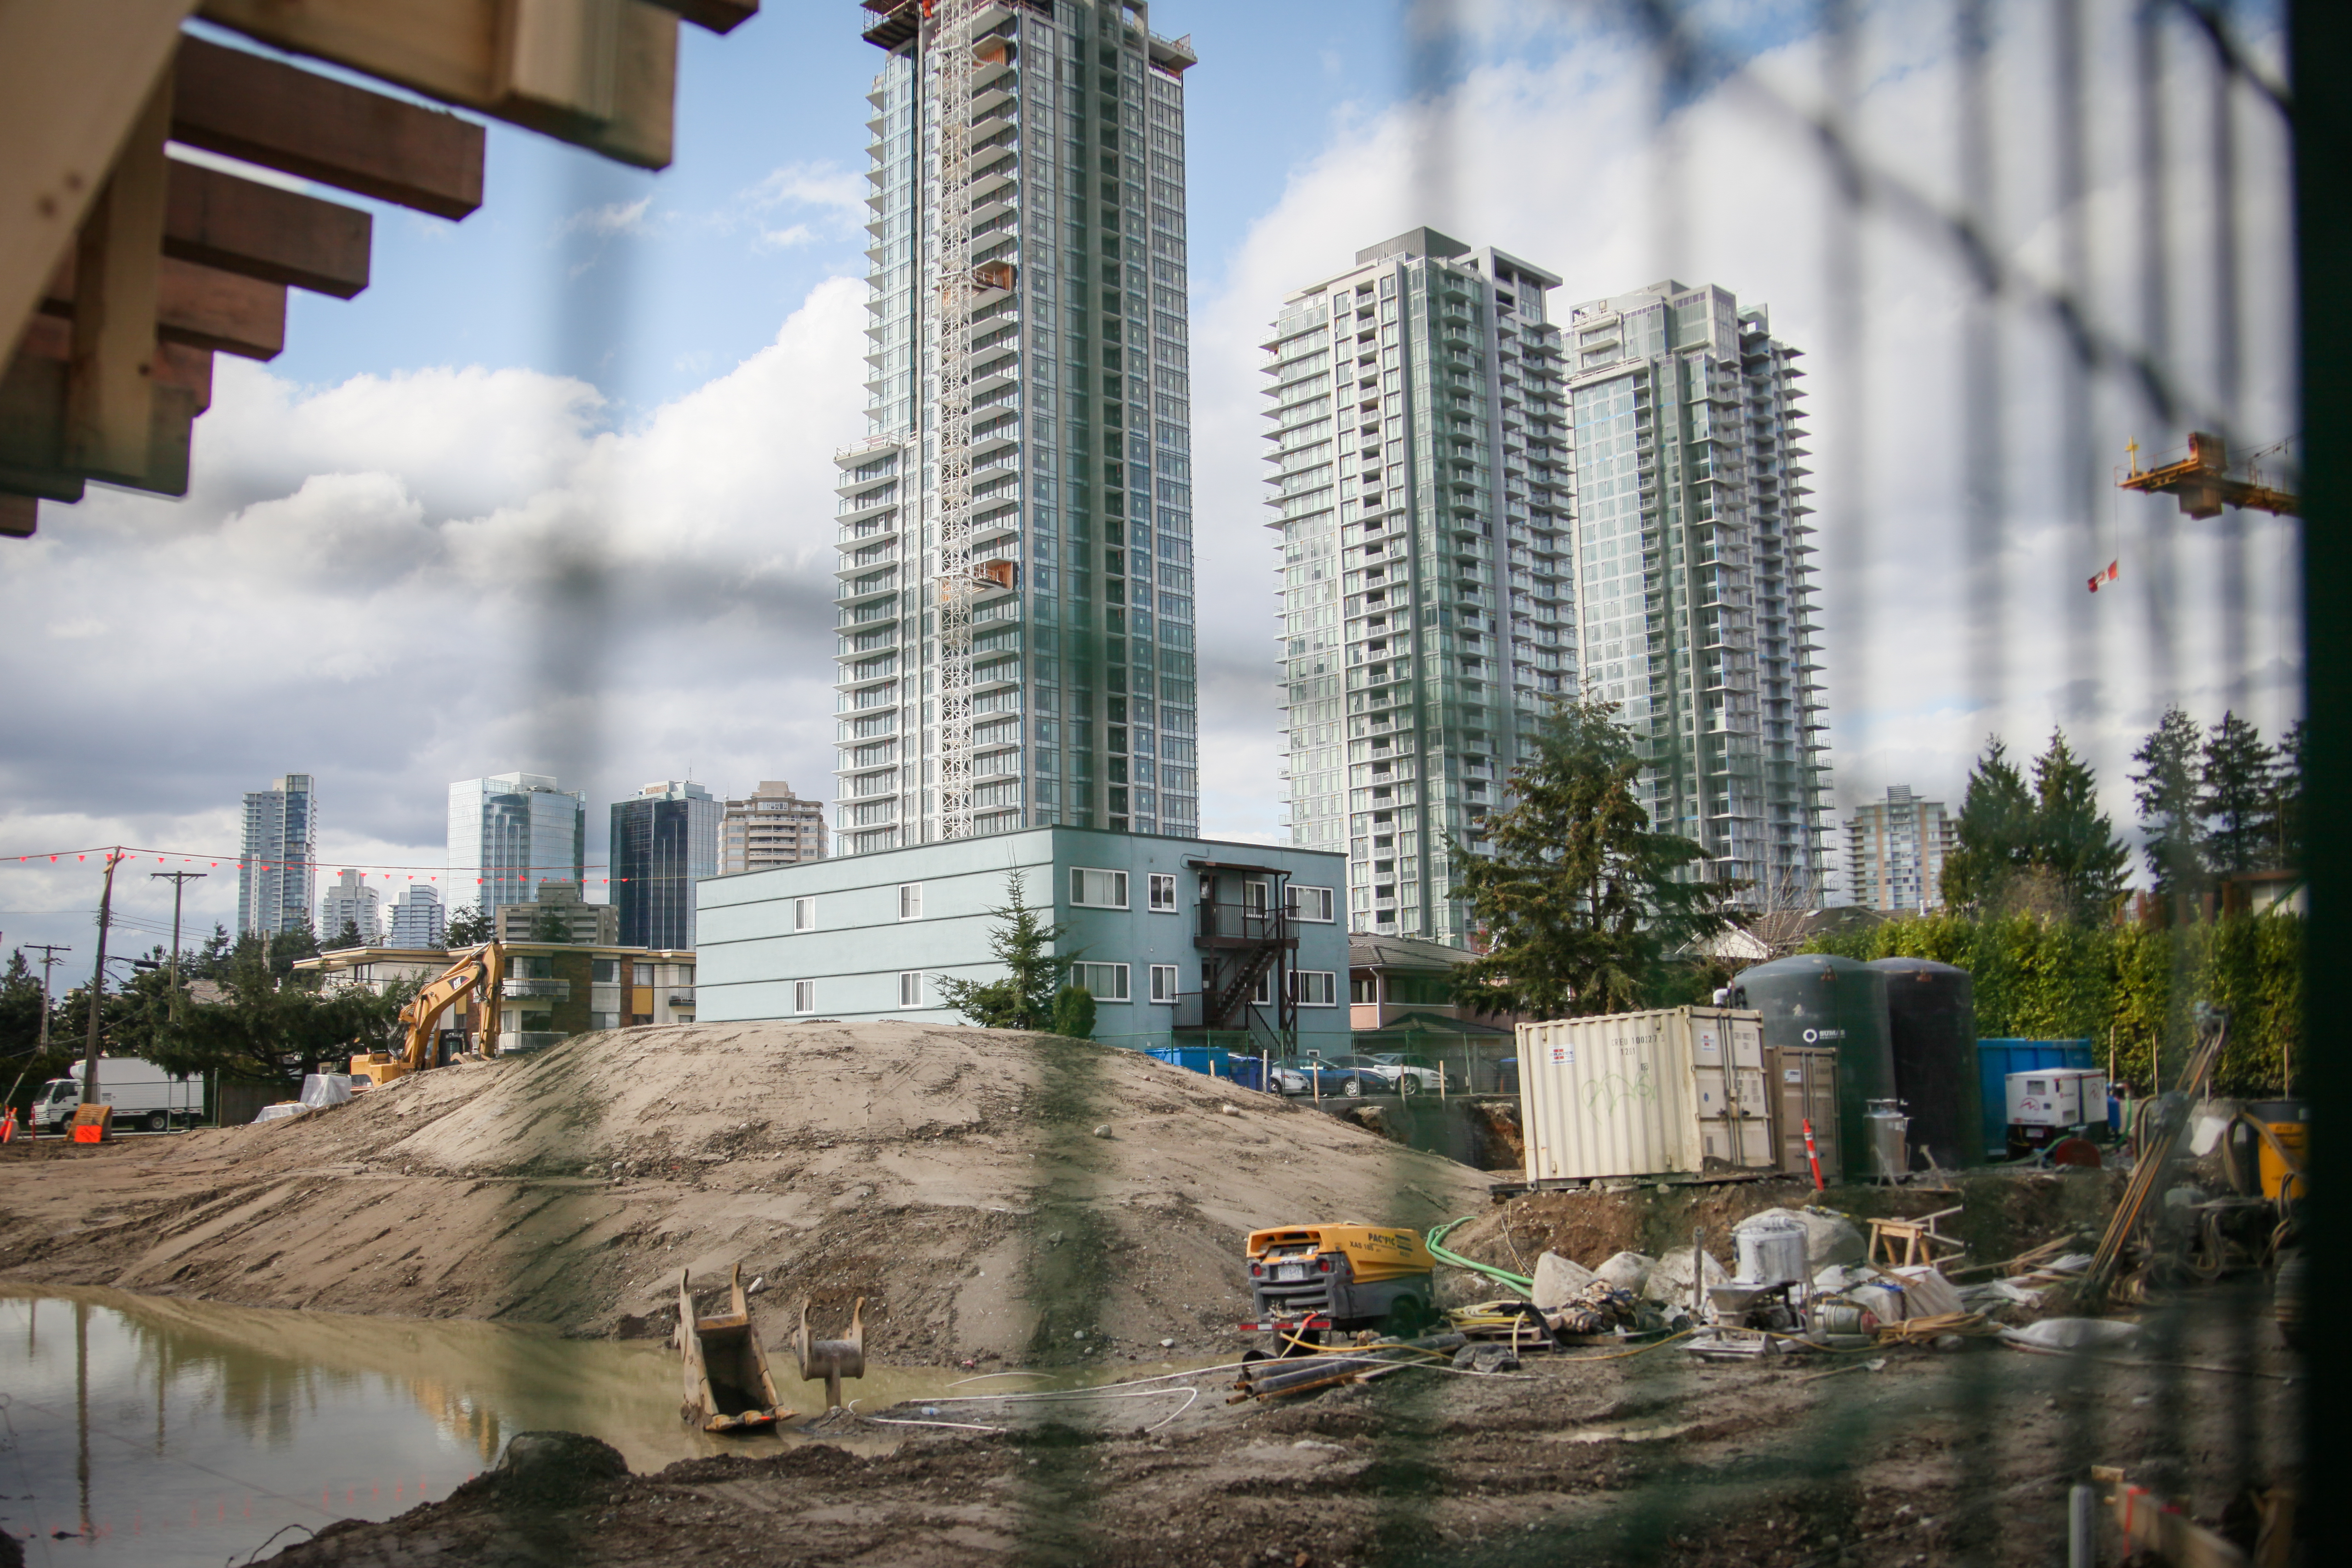 851px version of Rental-Condos-1.jpg